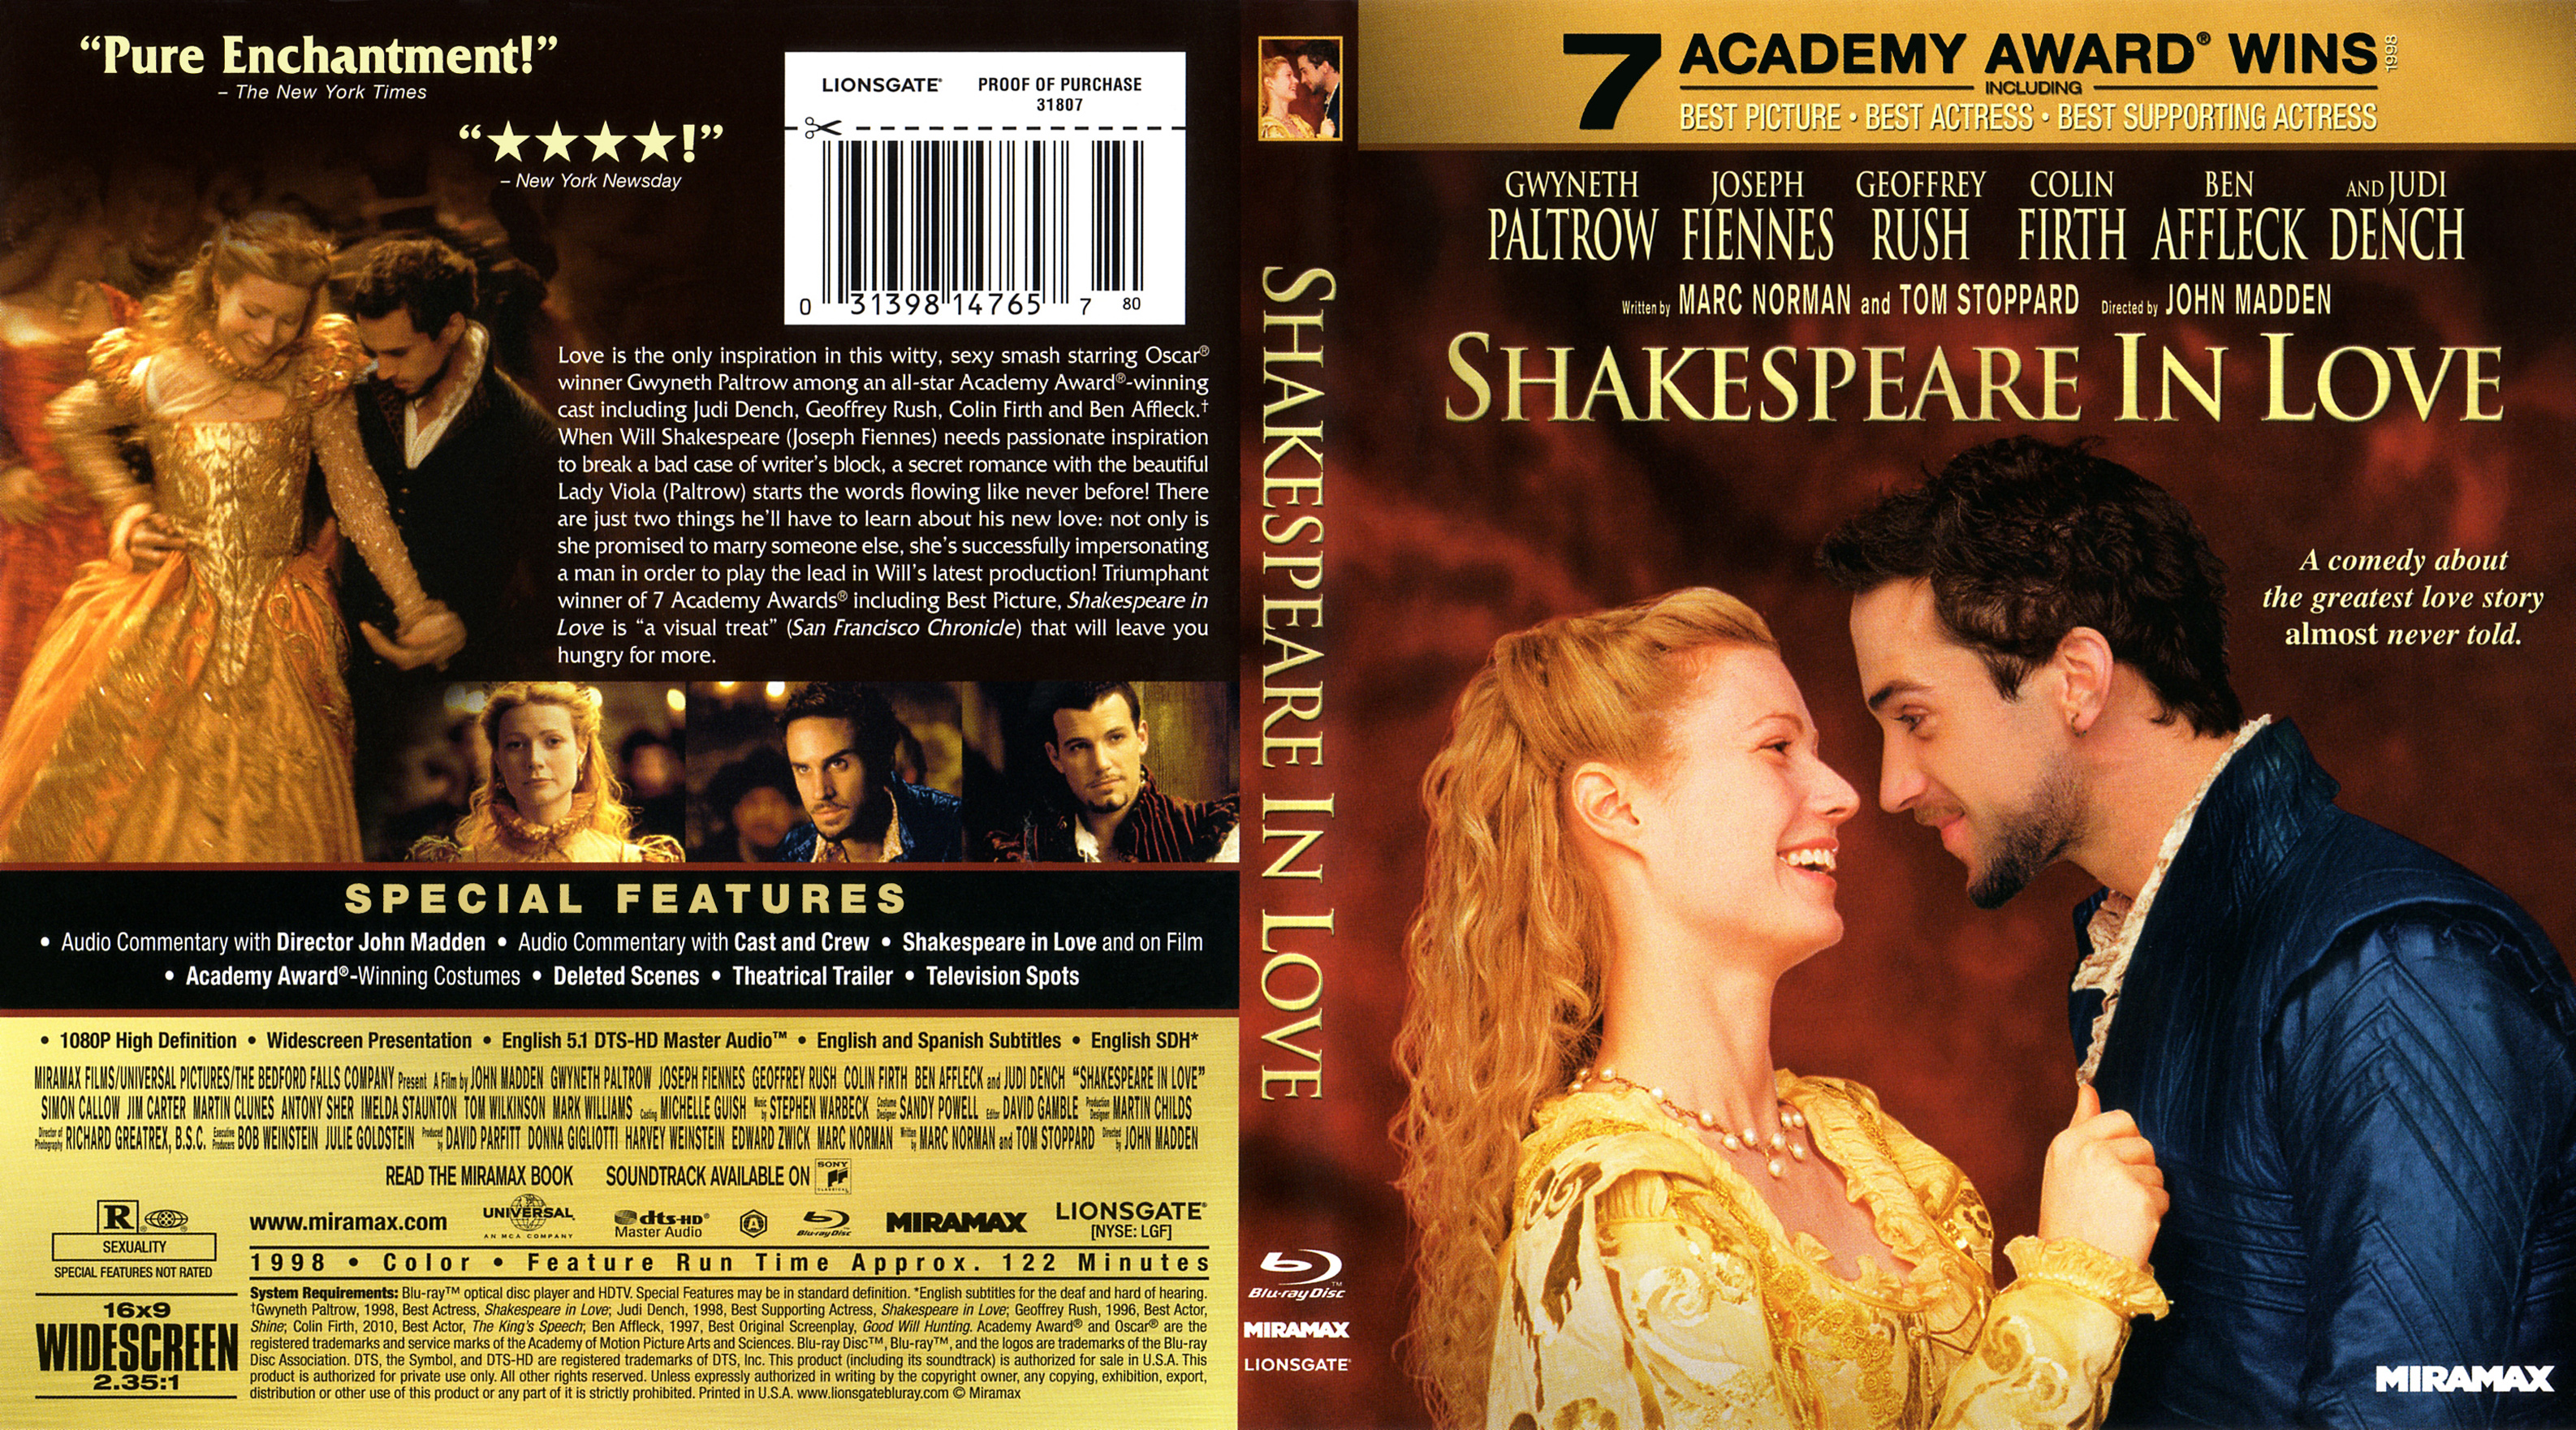 an overview of the film shakespeare in love Shakespeare in love is a 1998 american romantic period comedy-drama film directed by john madden, written by marc norman and playwright tom stoppard the film depicts an imaginary love affair involving viola de lesseps (gwyneth paltrow) and playwright william shakespeare (joseph fiennes) while he was writing romeo and juliet.